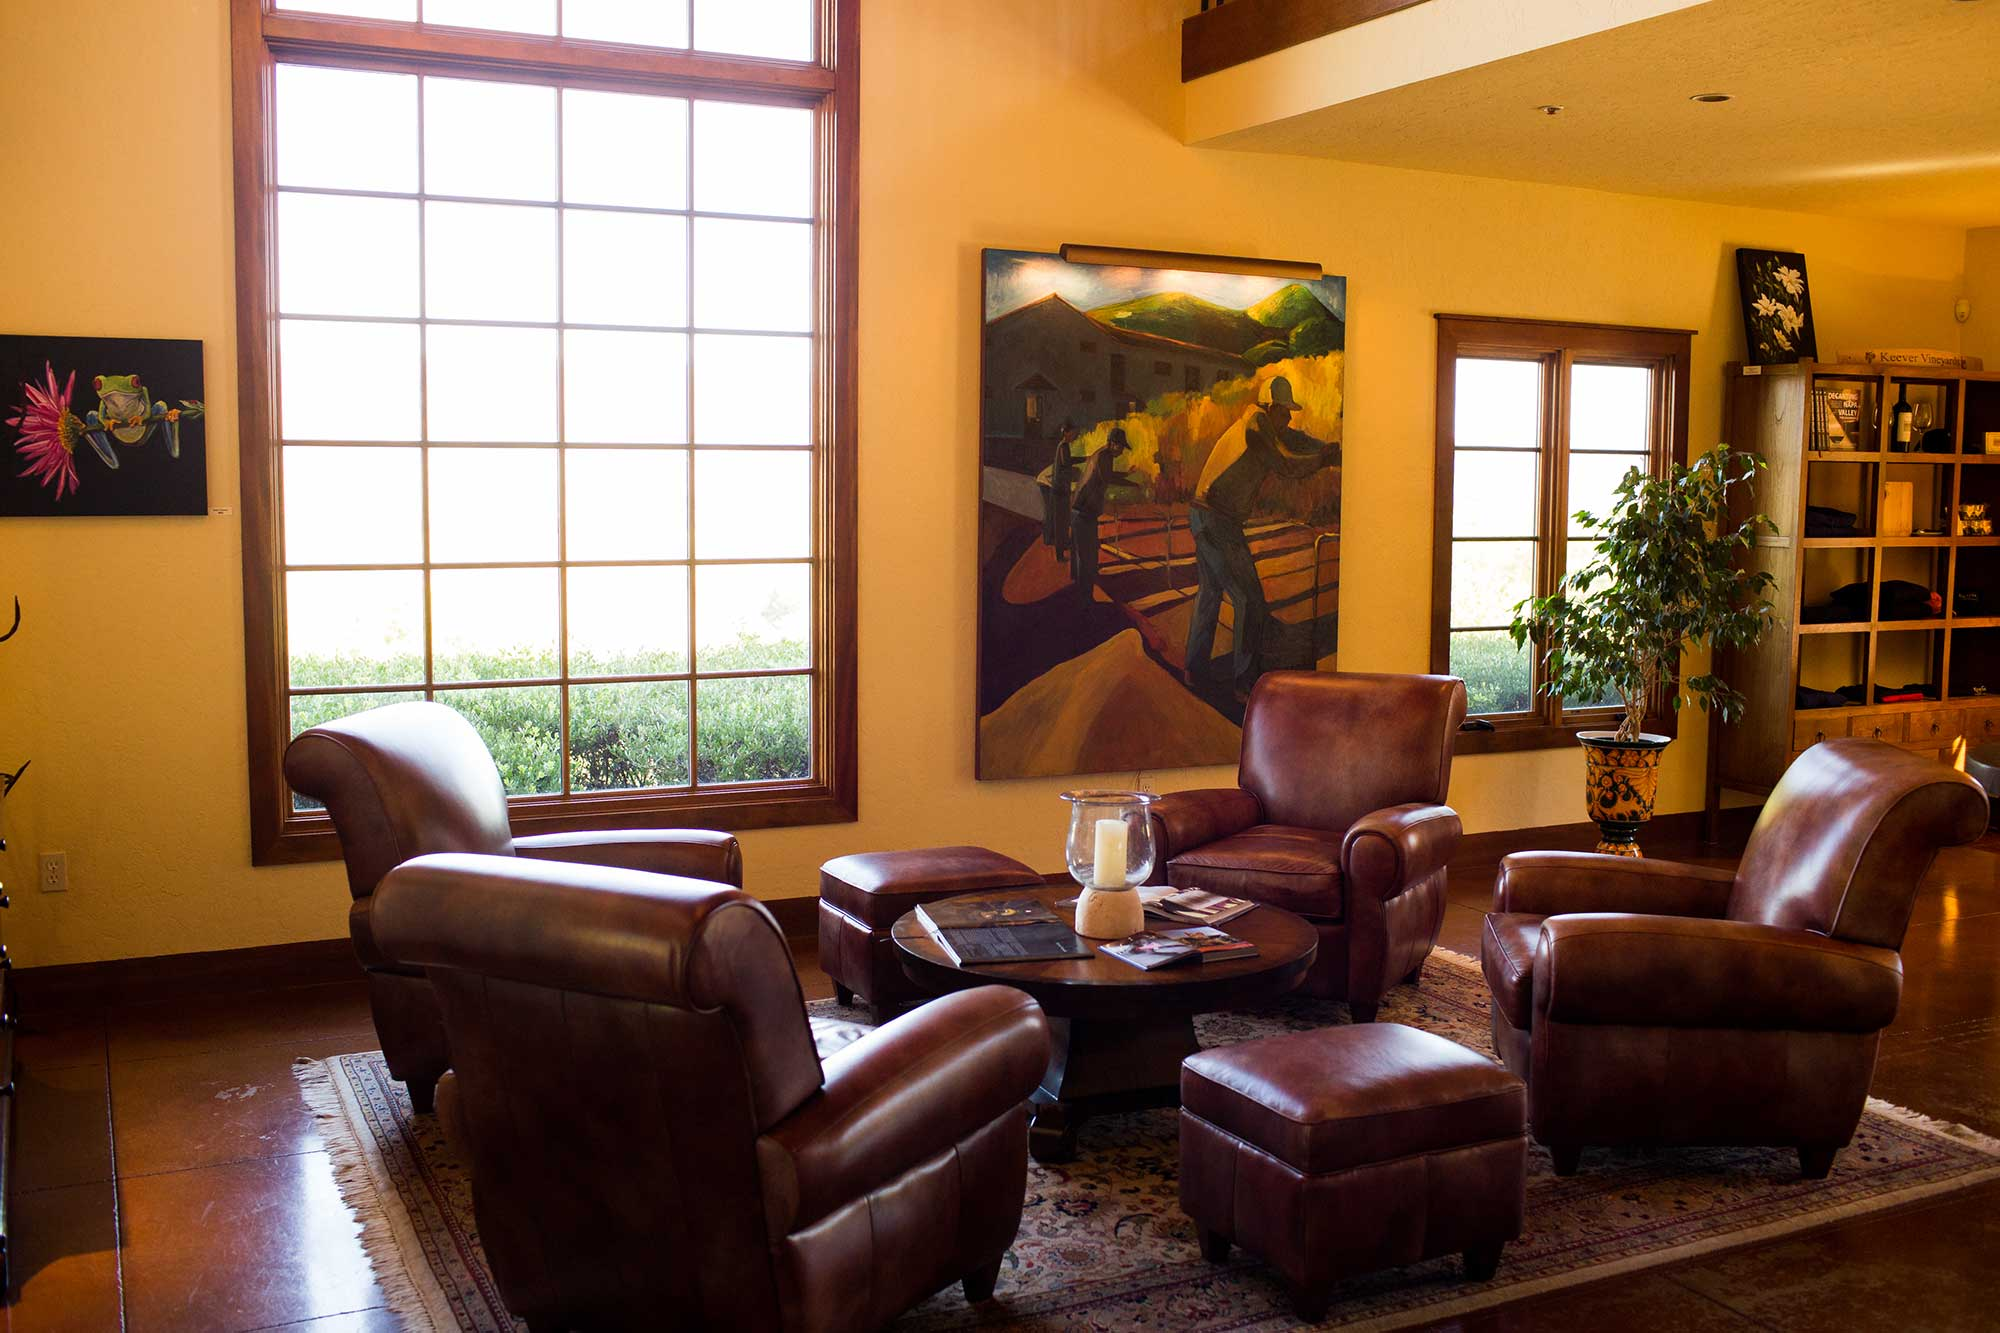 The winery tasting room at Keever Vineyards in Yountville, California